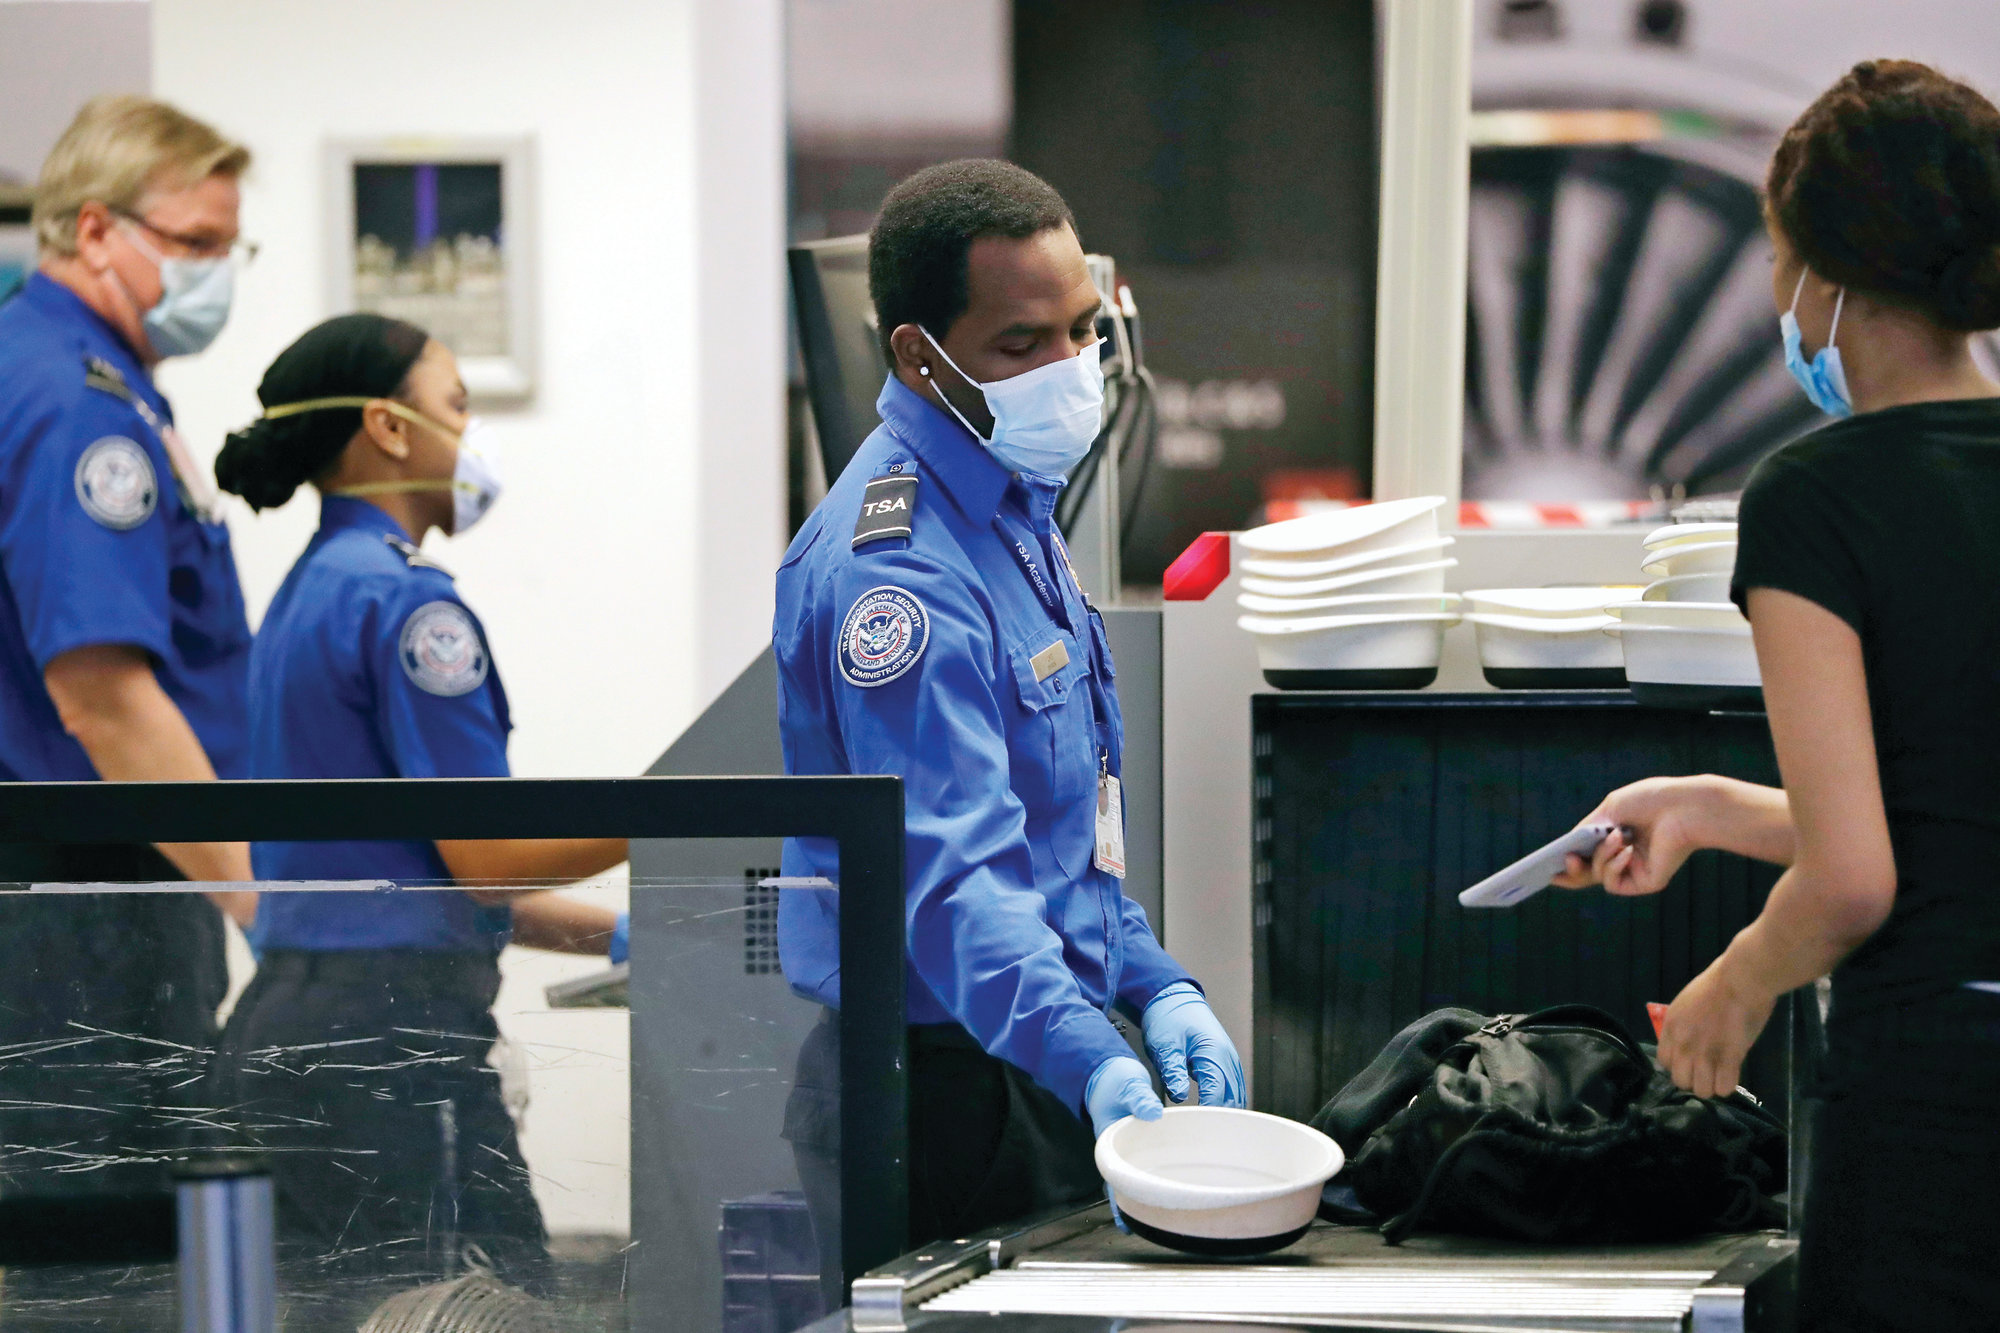 TSA officers wear protective masks at a security screening area at Seattle-Tacoma International Airport  in SeaTac, Wash. A high-ranking Transportation Security Administration official says the agency is falling short when it comes to protecting airport screeners and the public from the new coronavirus, according to published reports. A federal office that handles whistleblower complaints has ordered an investigation.